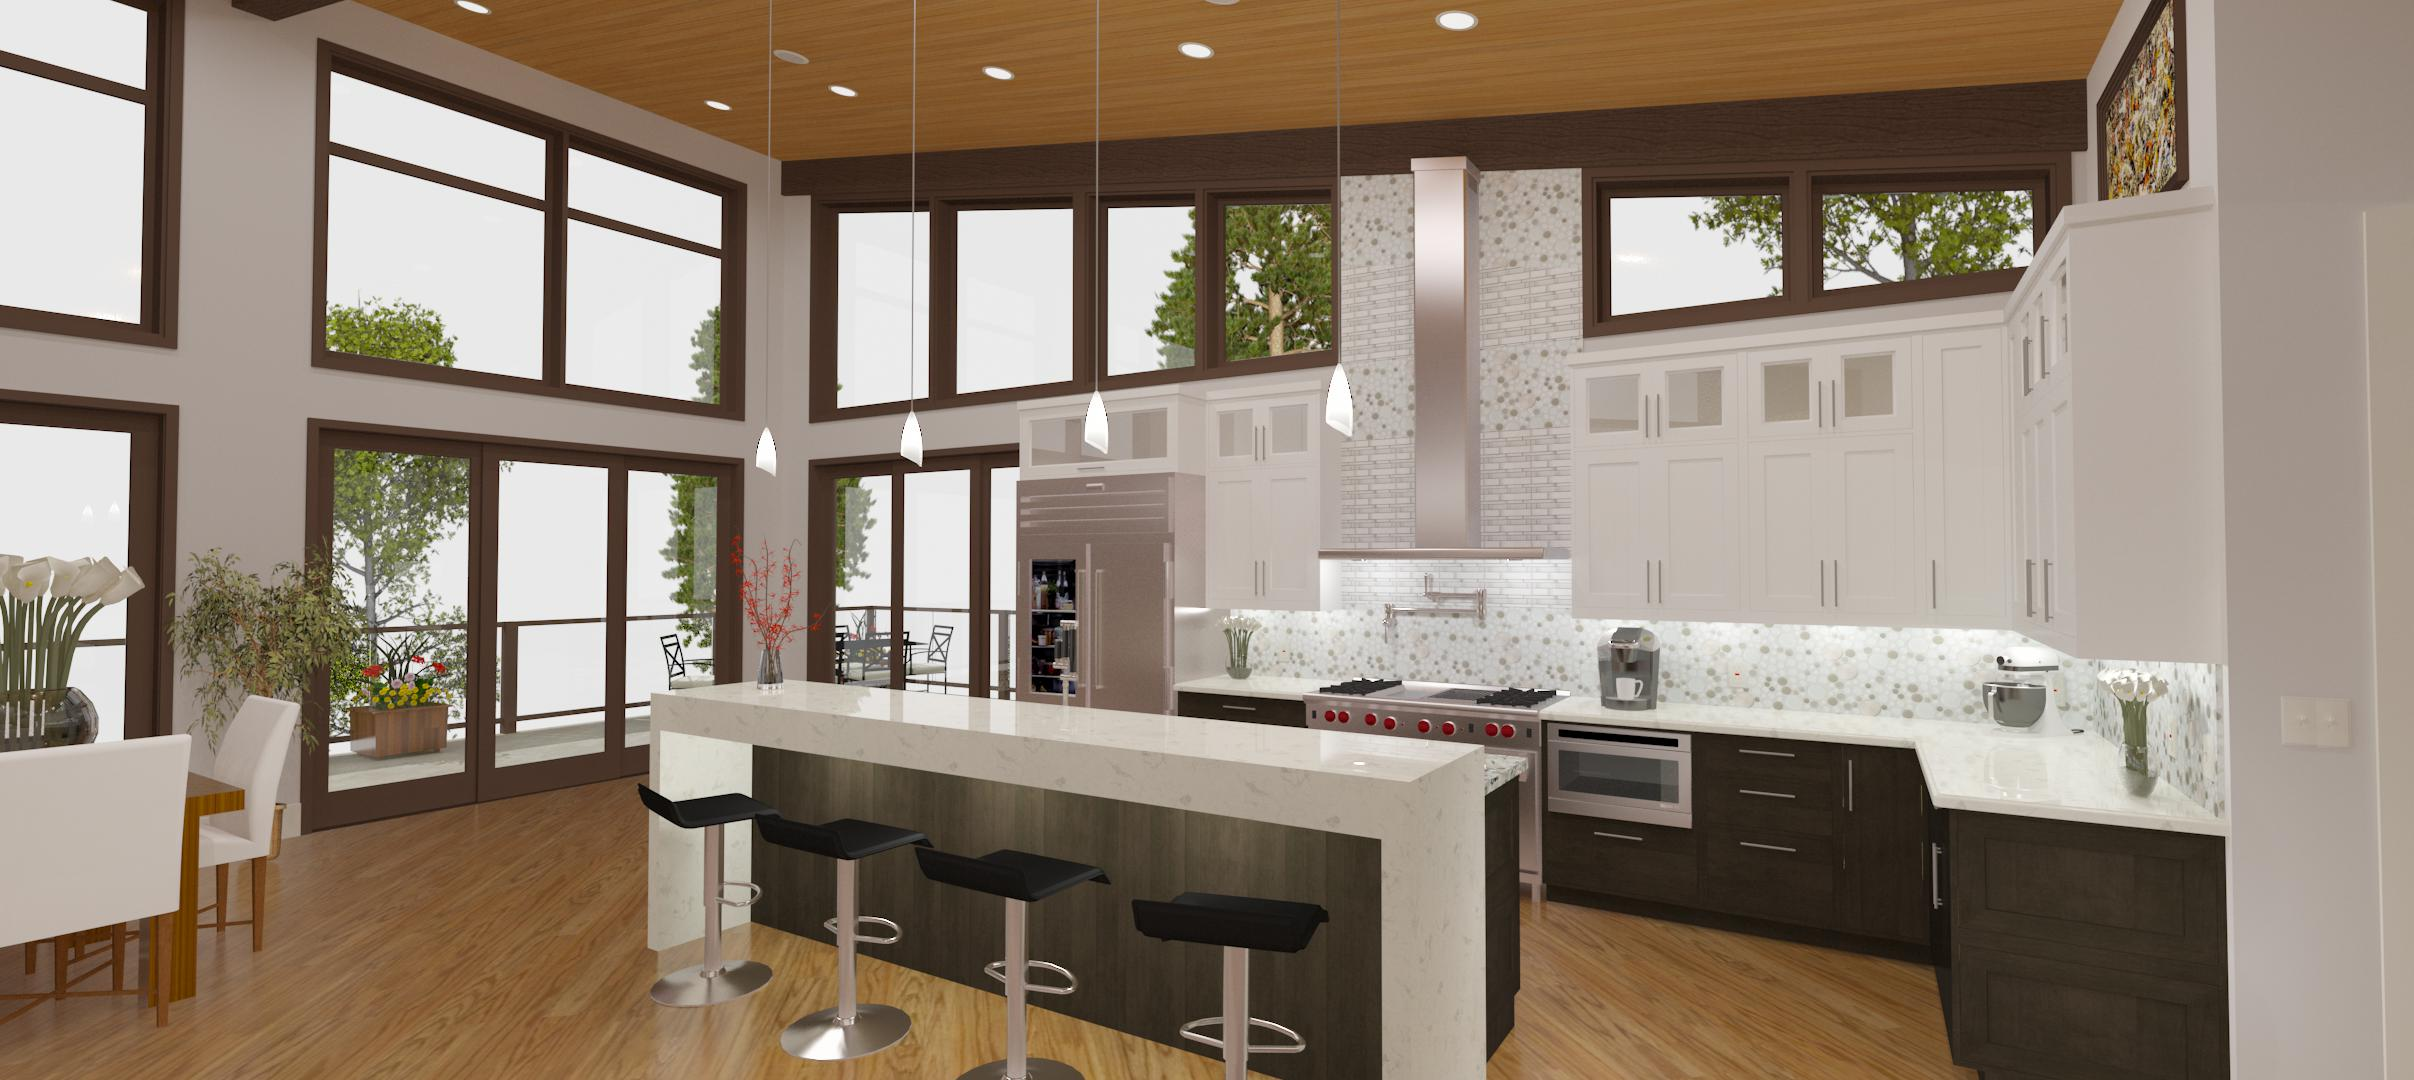 Kitchen Part 1 Room Layout, Cabinets, Dimensions   Breckenridge Home Design